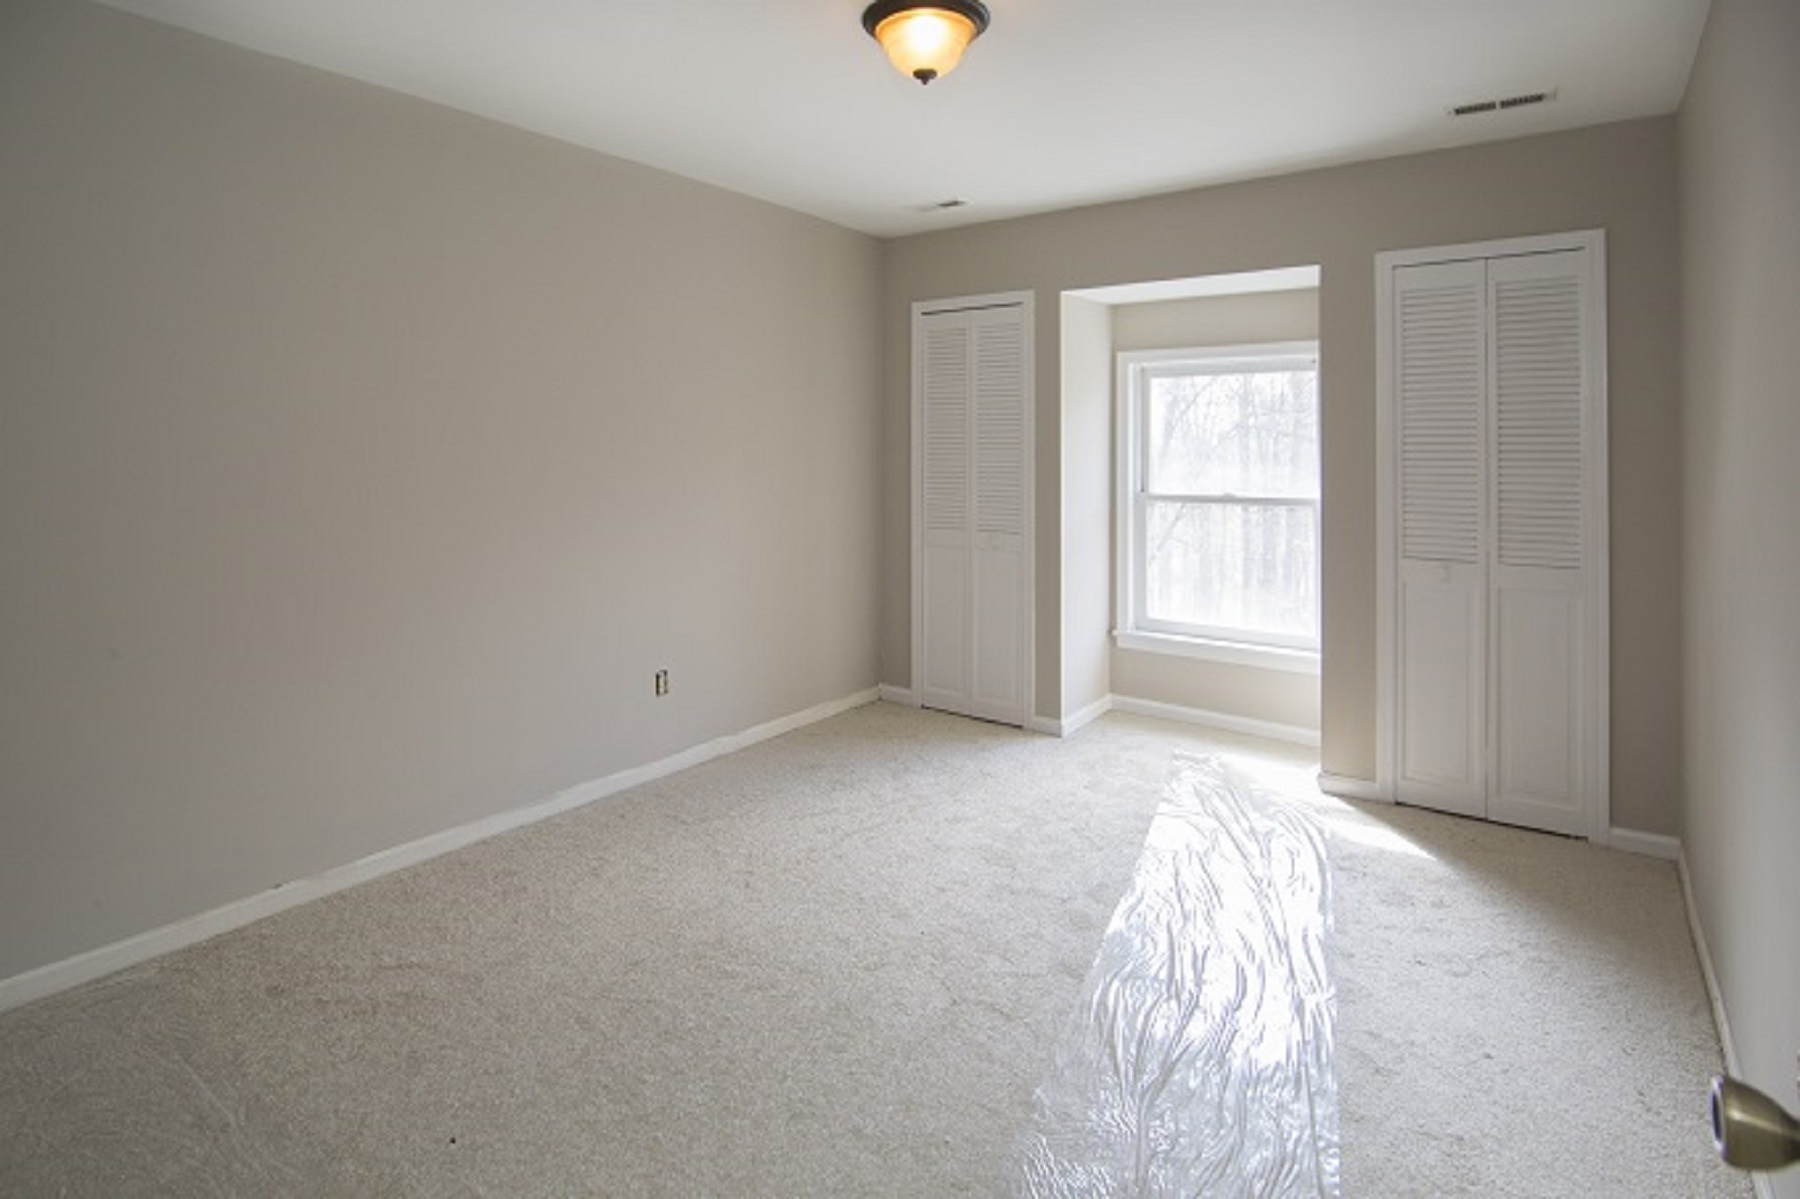 Condominium for Rent at Updated and Bright 123 Countryside Drive Basking Ridge, New Jersey 07920 United States